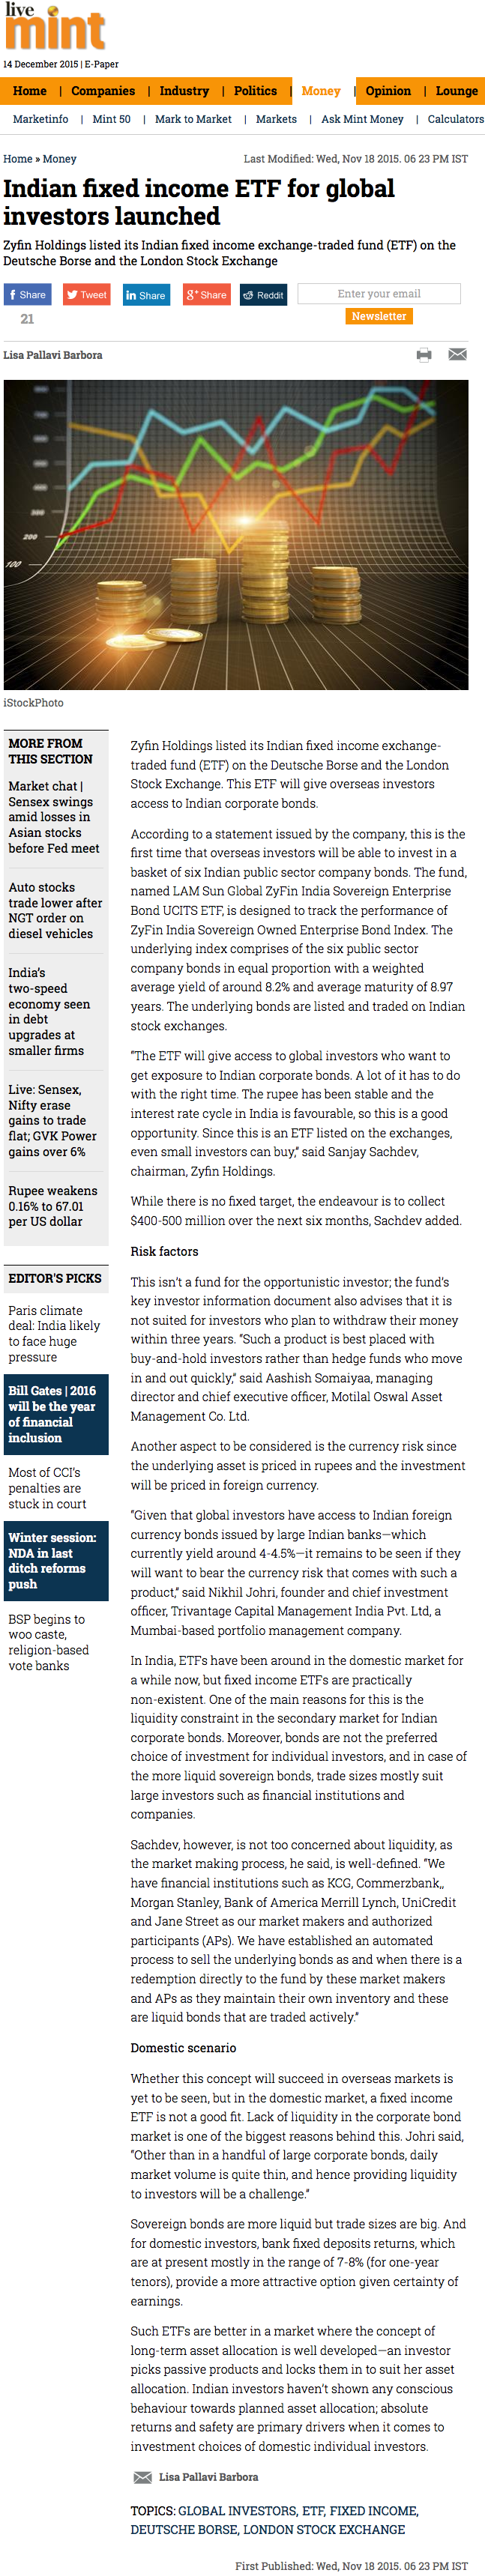 screenshot-www livemint com 2015-12-14 09-29-45